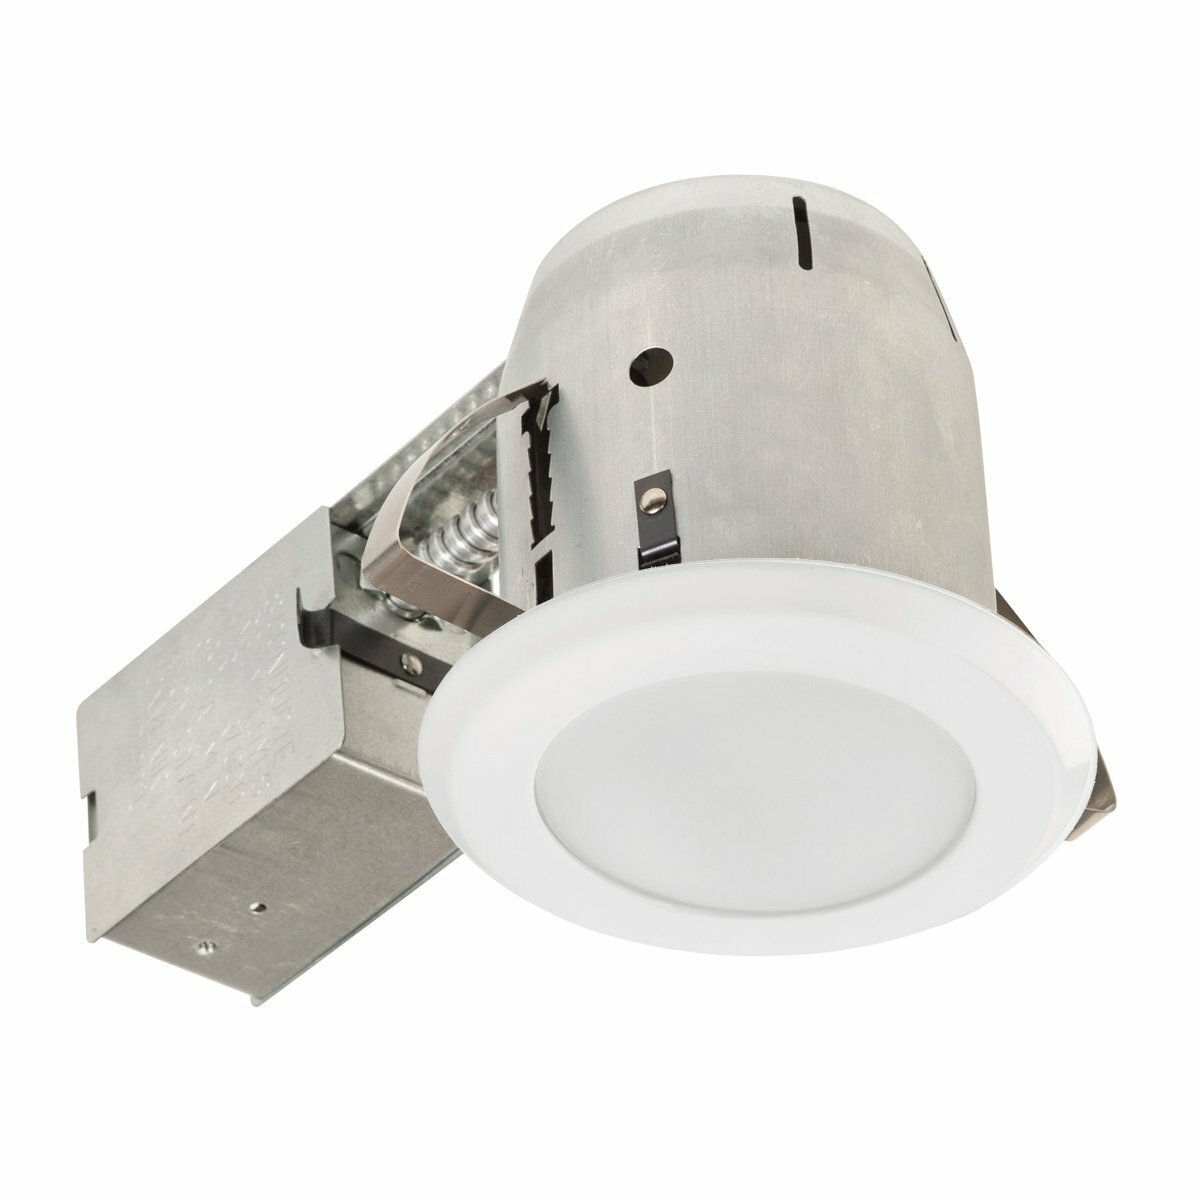 Bathroom Recessed Lighting Kit: Globe Electric Company LED Integrated IC Rated Shower 4